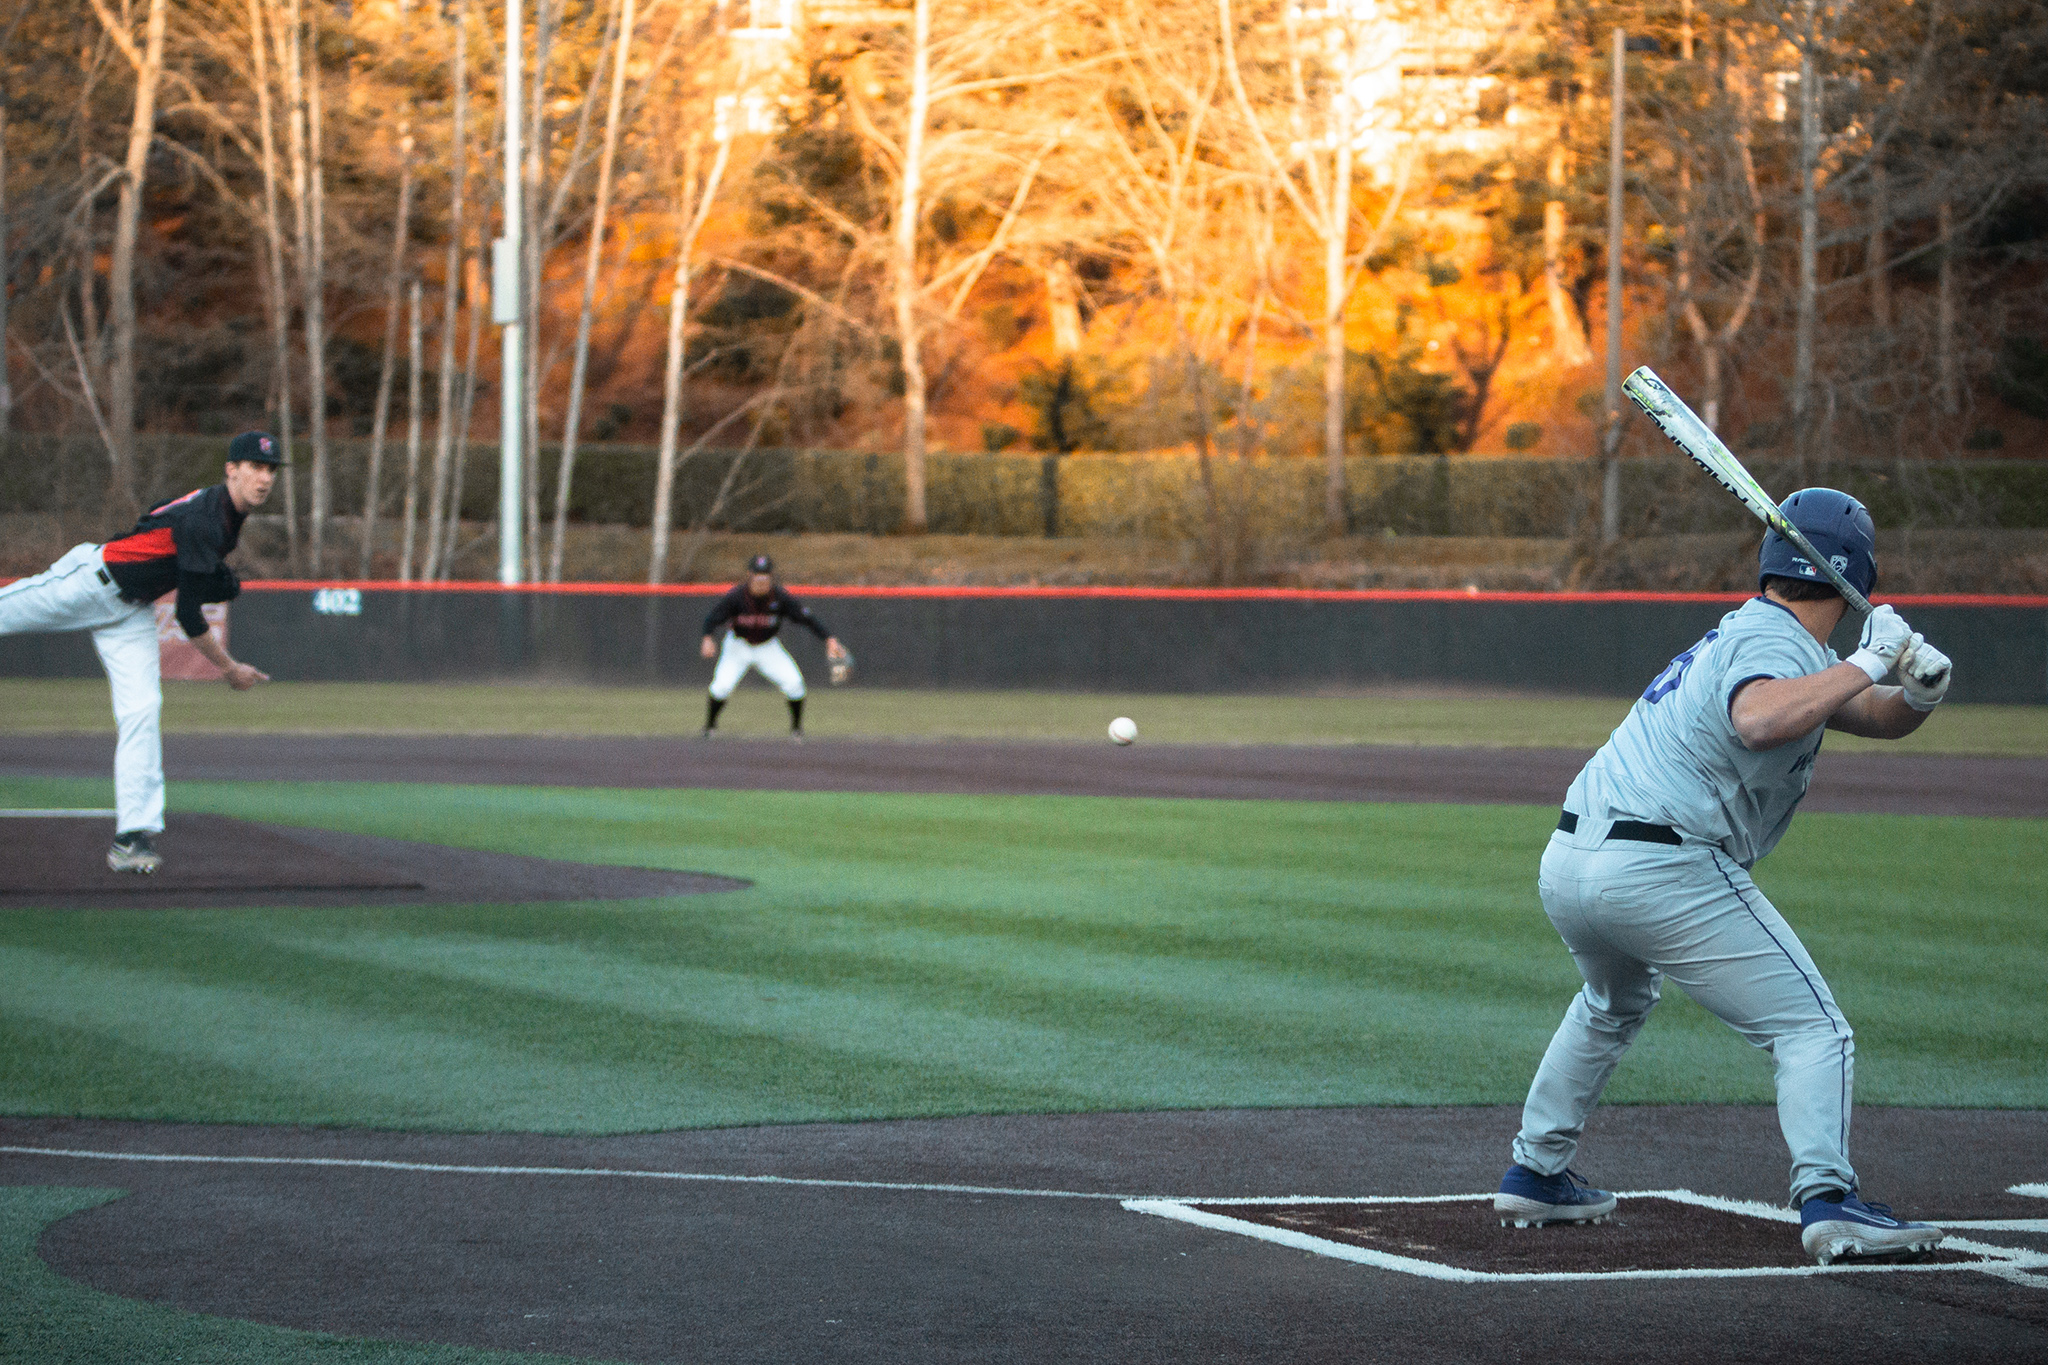 Will Smith pitching to the University of Washington's lineup in their home game against the Huskies on Tuesday, March 5, 2019.